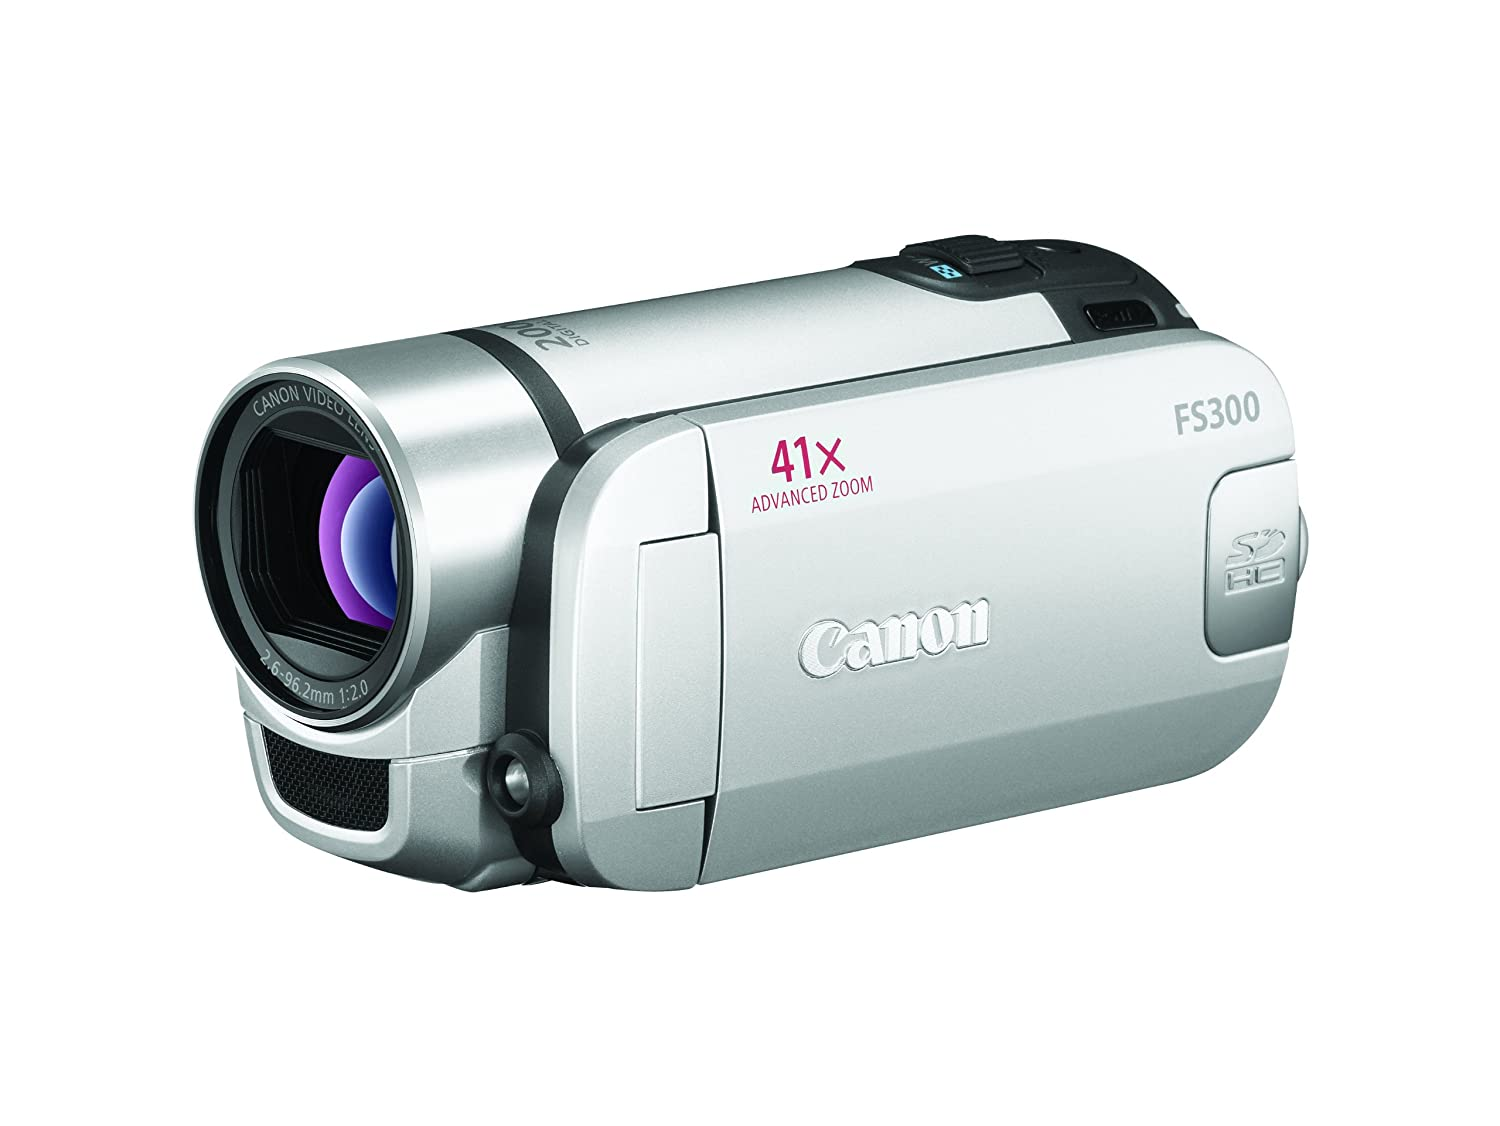 Amazon.com : Canon FS300 Flash Memory Camcorder w/41x Advanced Zoom  (Silver) (Discontinued by Manufacturer) : Camera & Photo